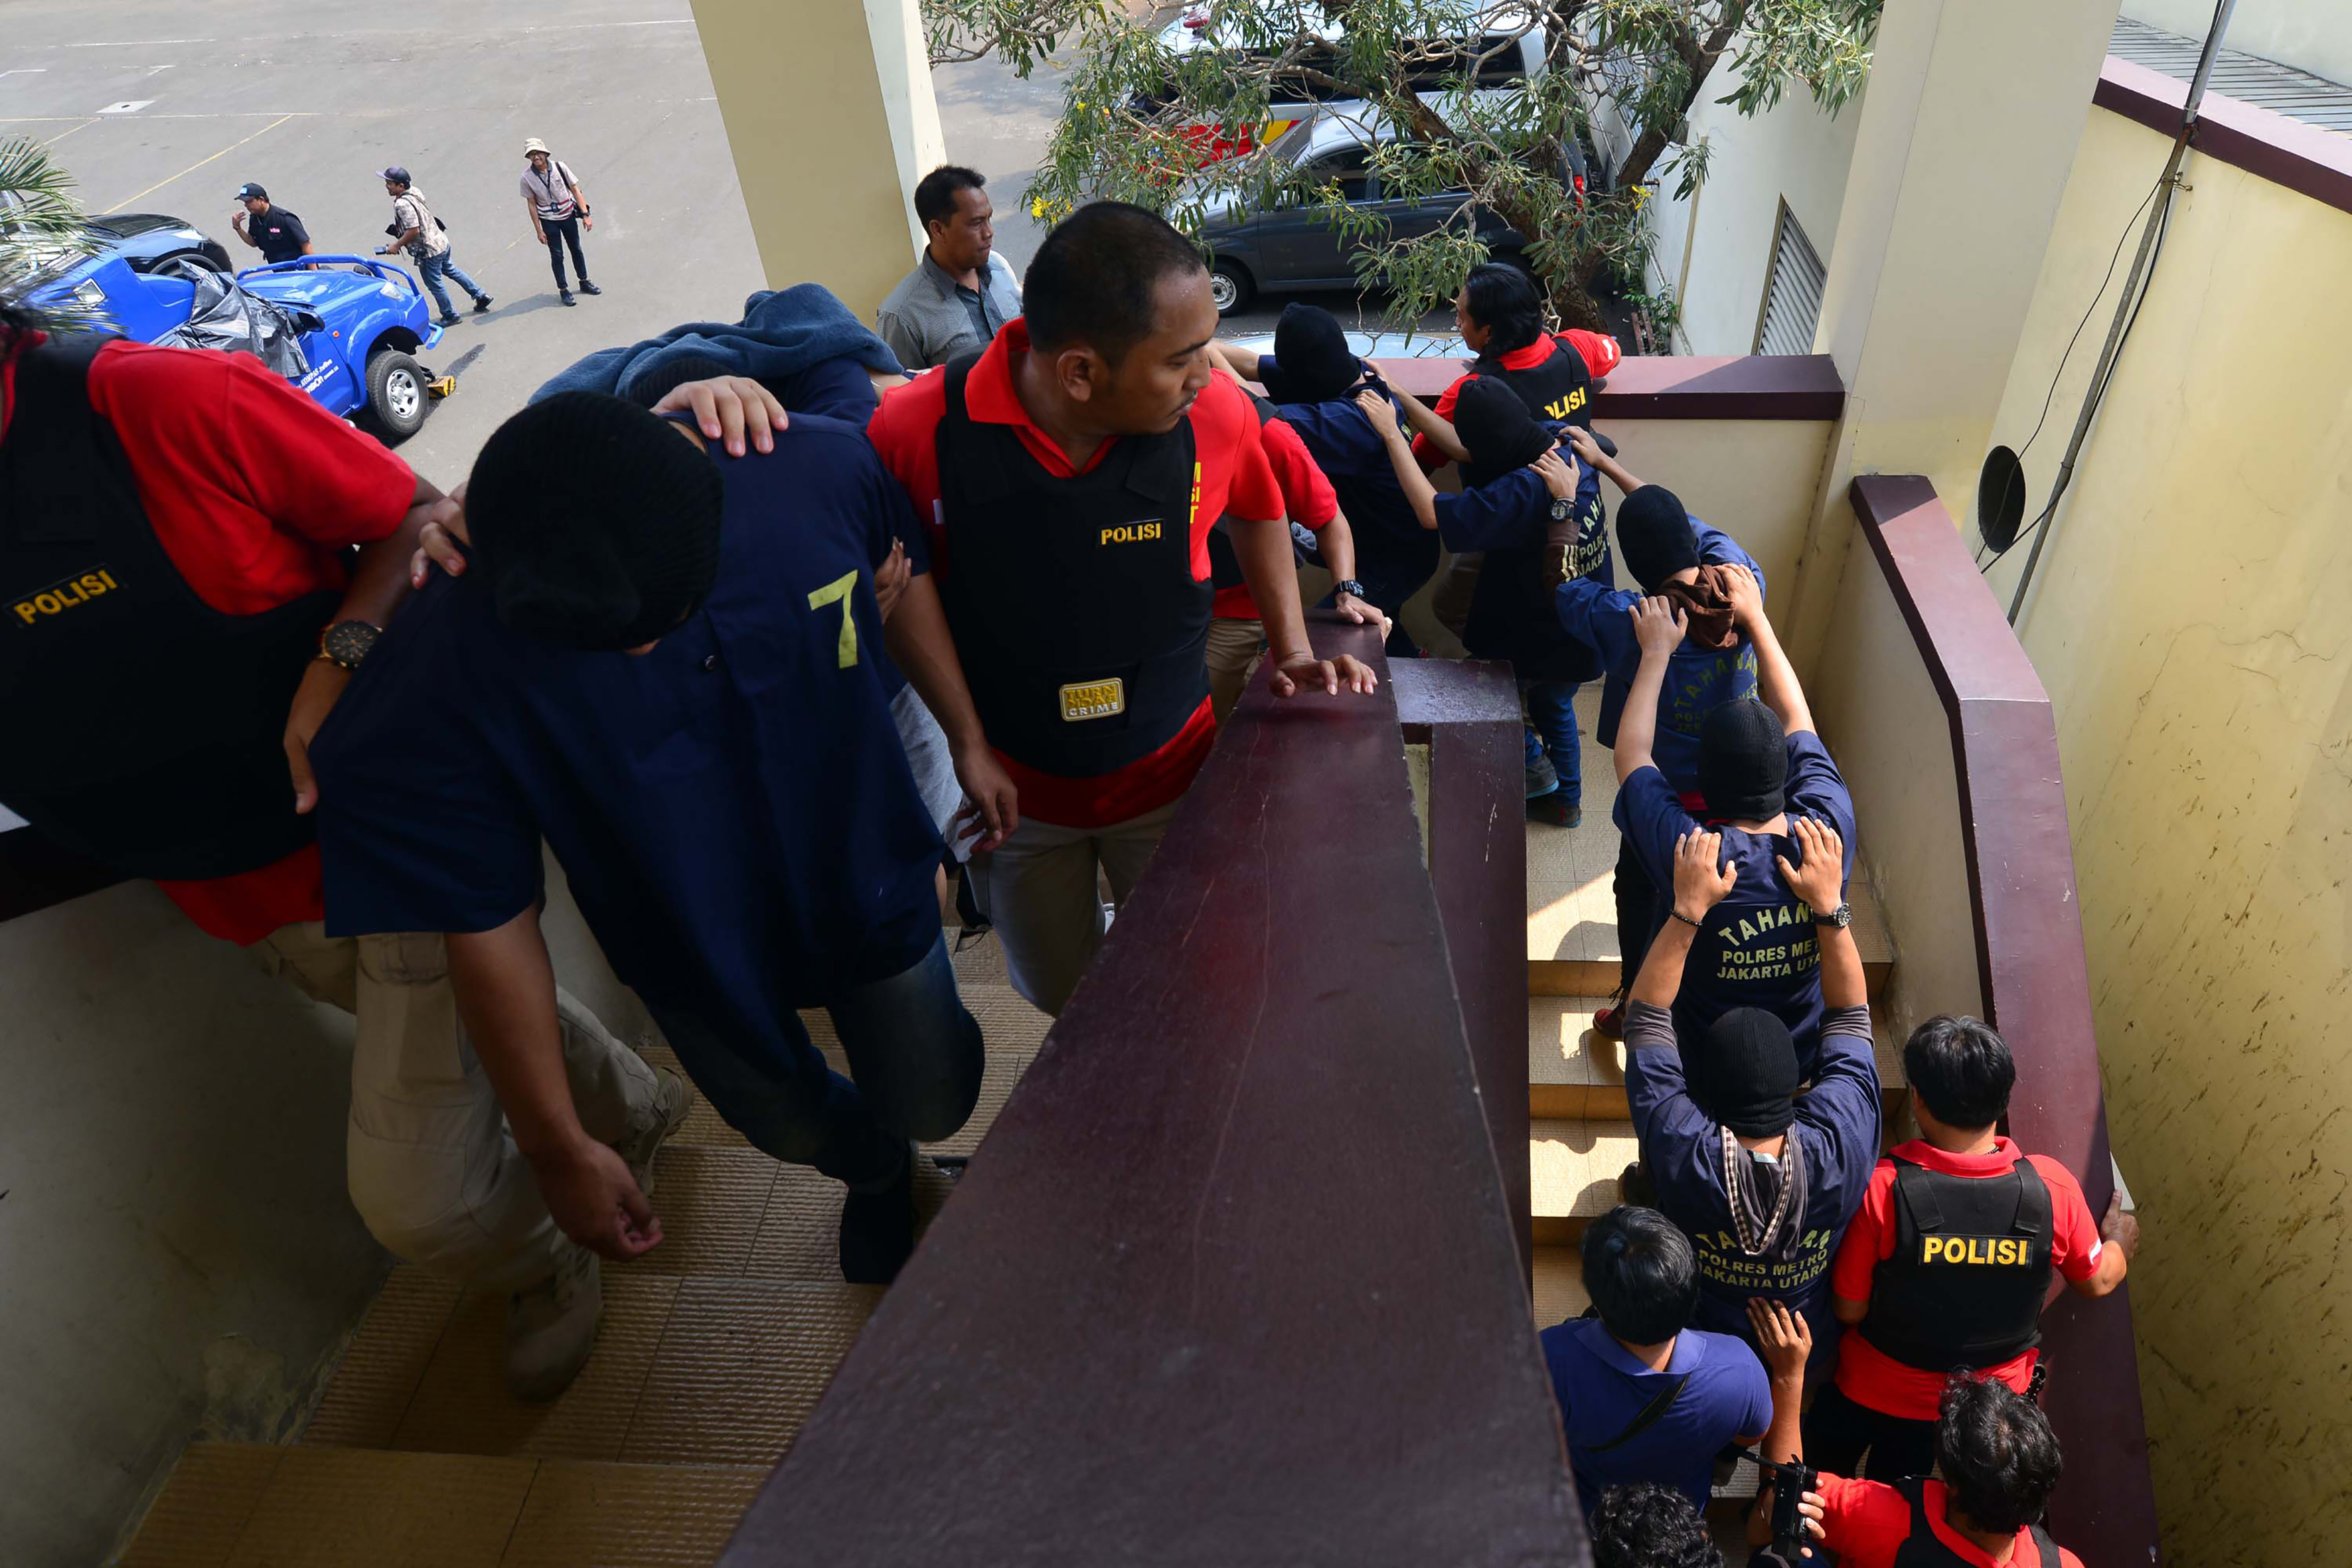 Indonesian police guard men arrested in a recent raid during a press conference at a police station in Jakarta on May 22, 2017.